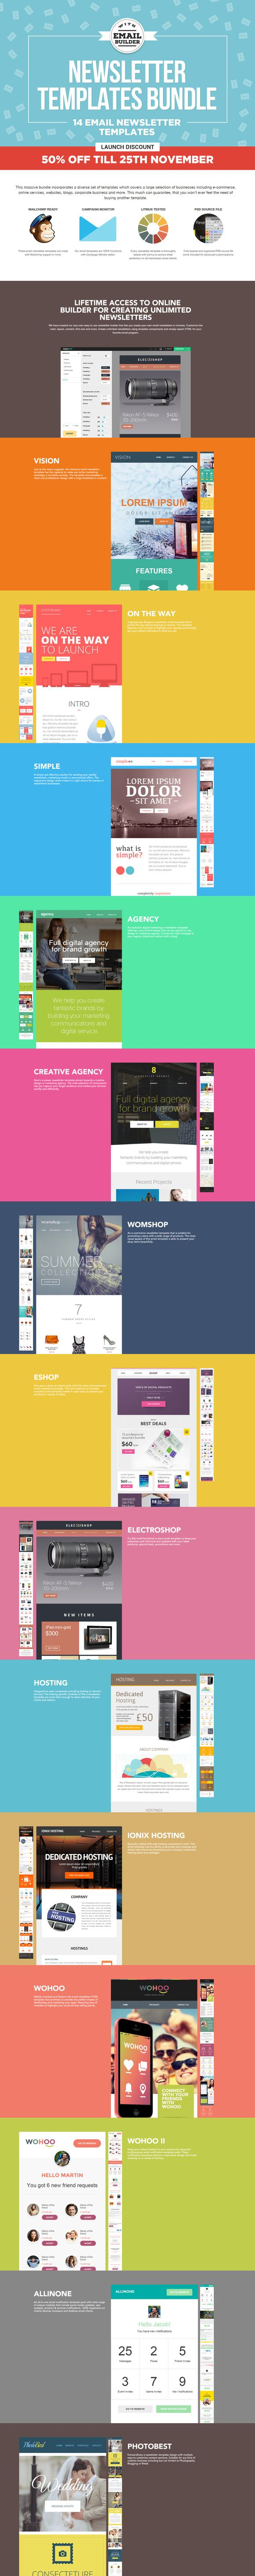 14 Email Newsletter Templates Bundle by ZippyPixels on Creative Market